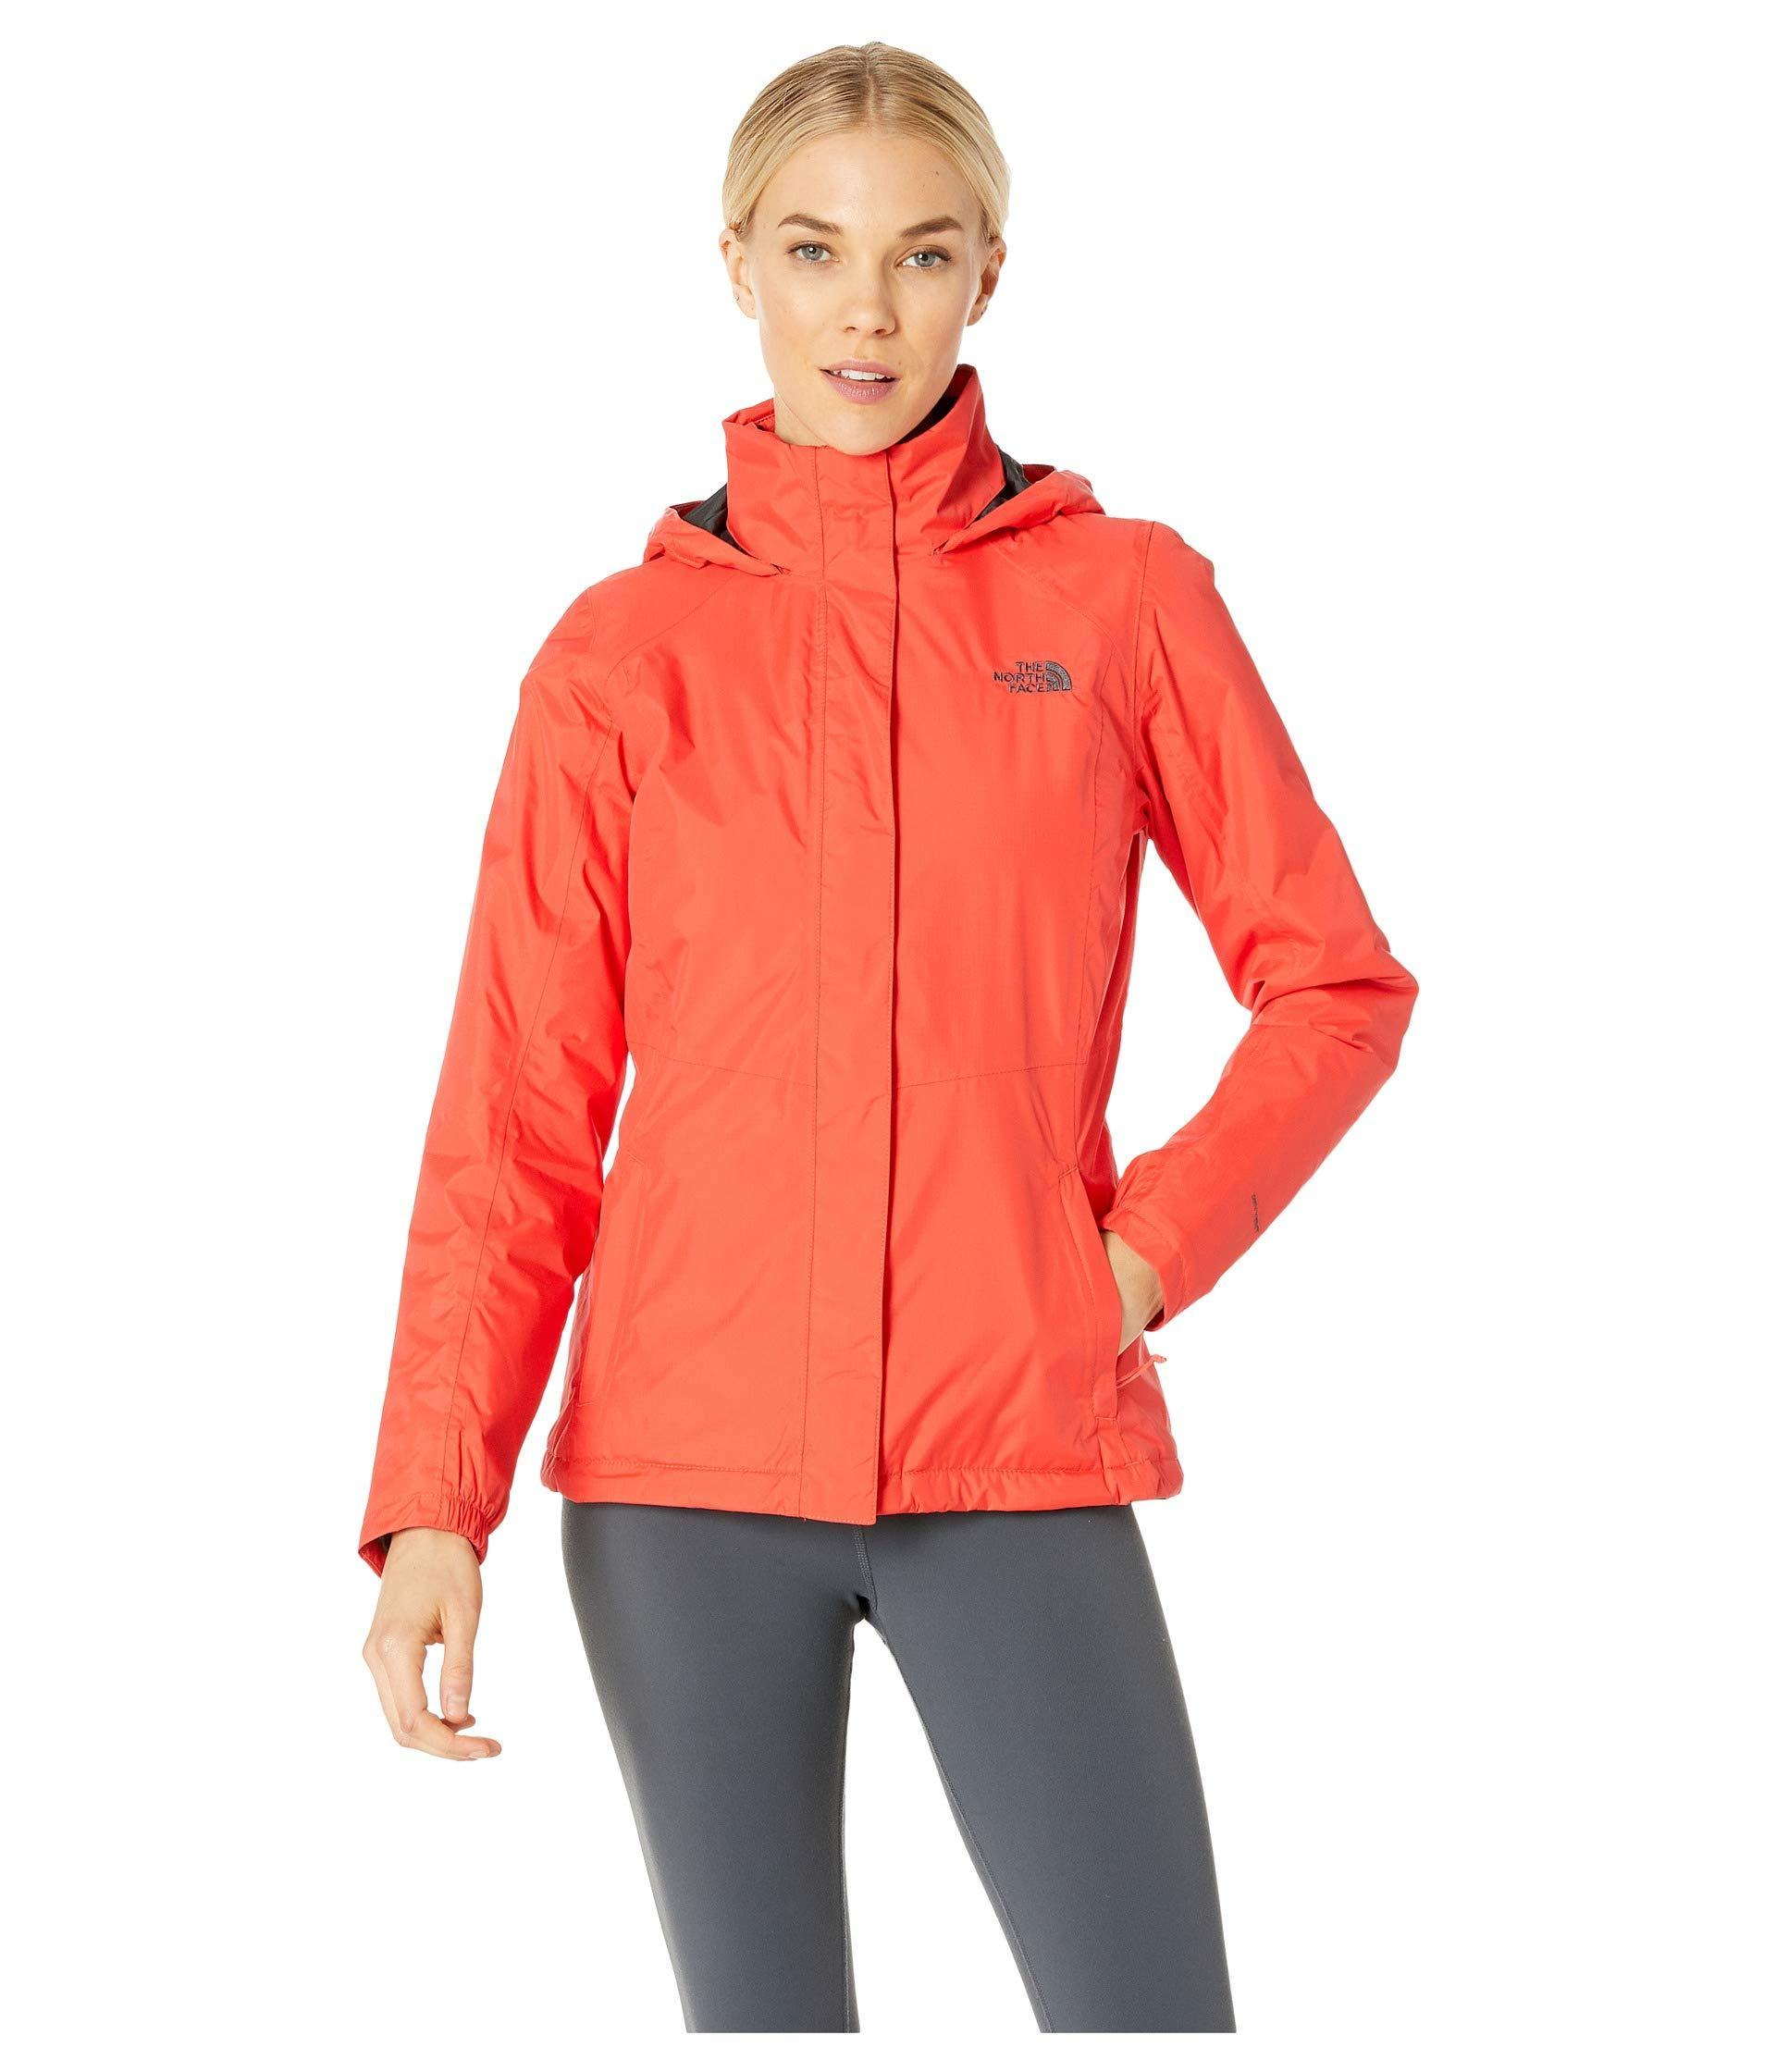 6bf70f262b87 Lyst - The North Face Resolve Insulated Jacket in Red - Save 7%